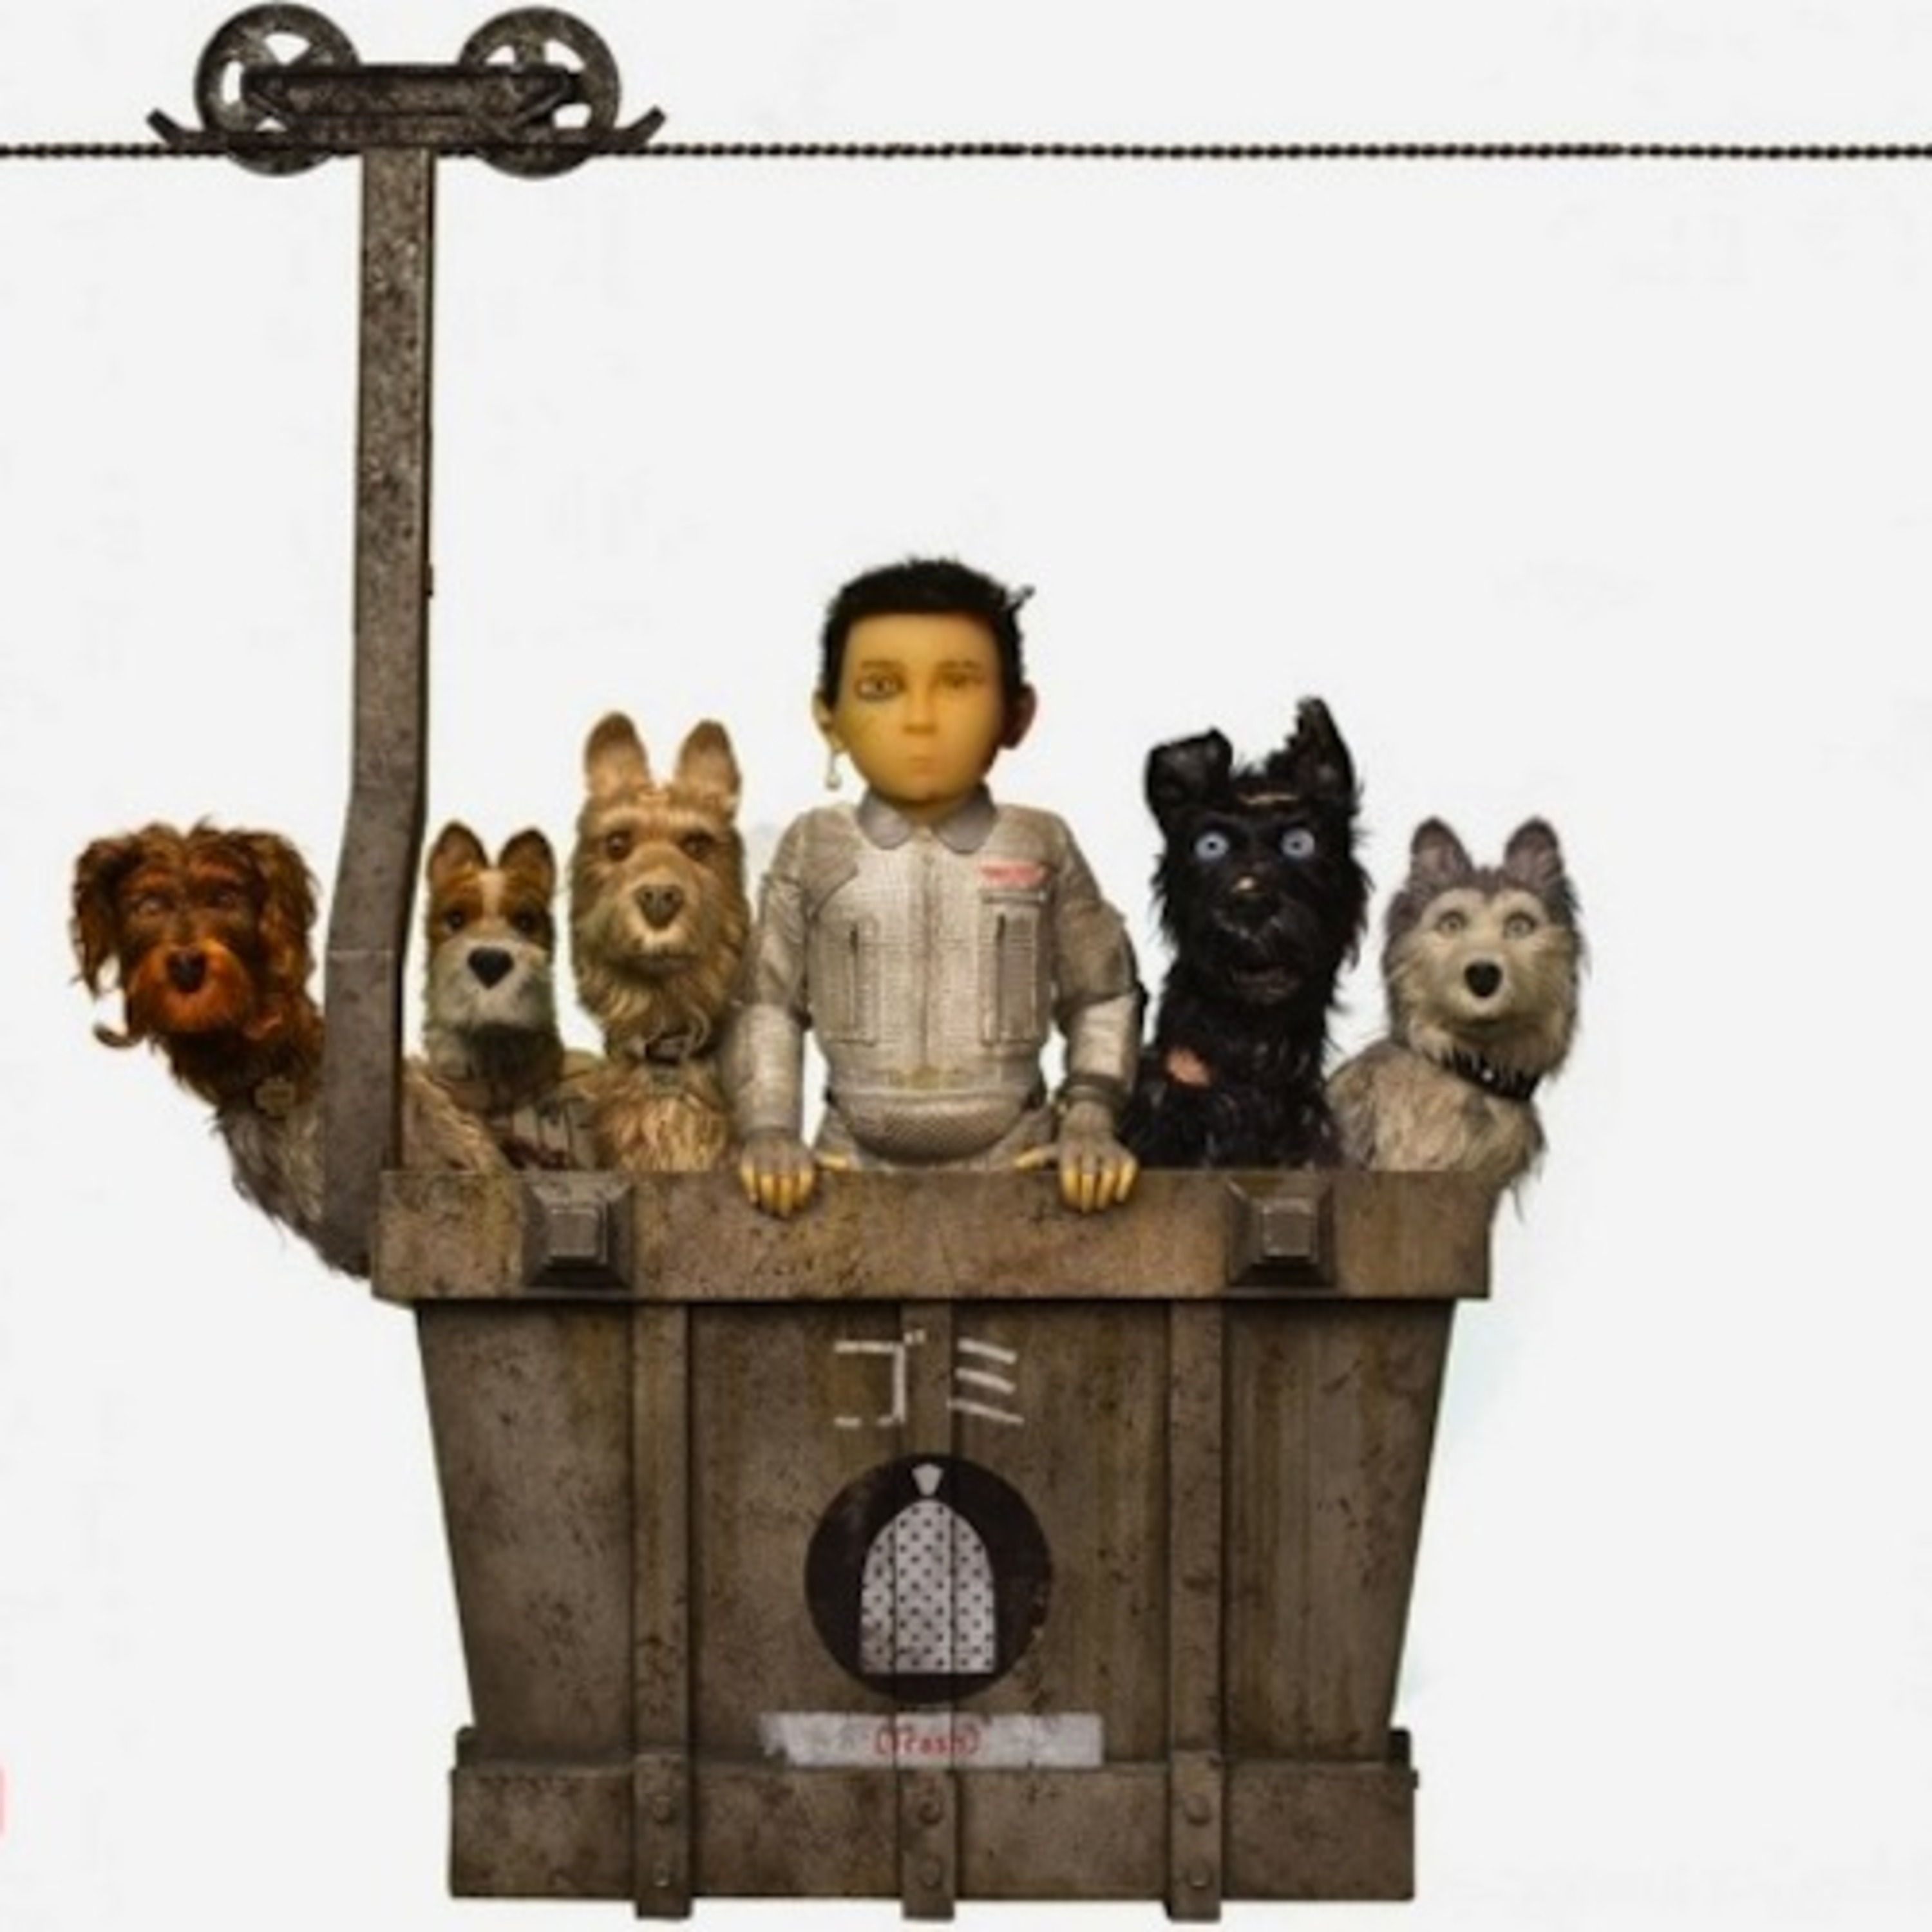 Isle of Dogs Review - Man's Best Friend or Trash Island?